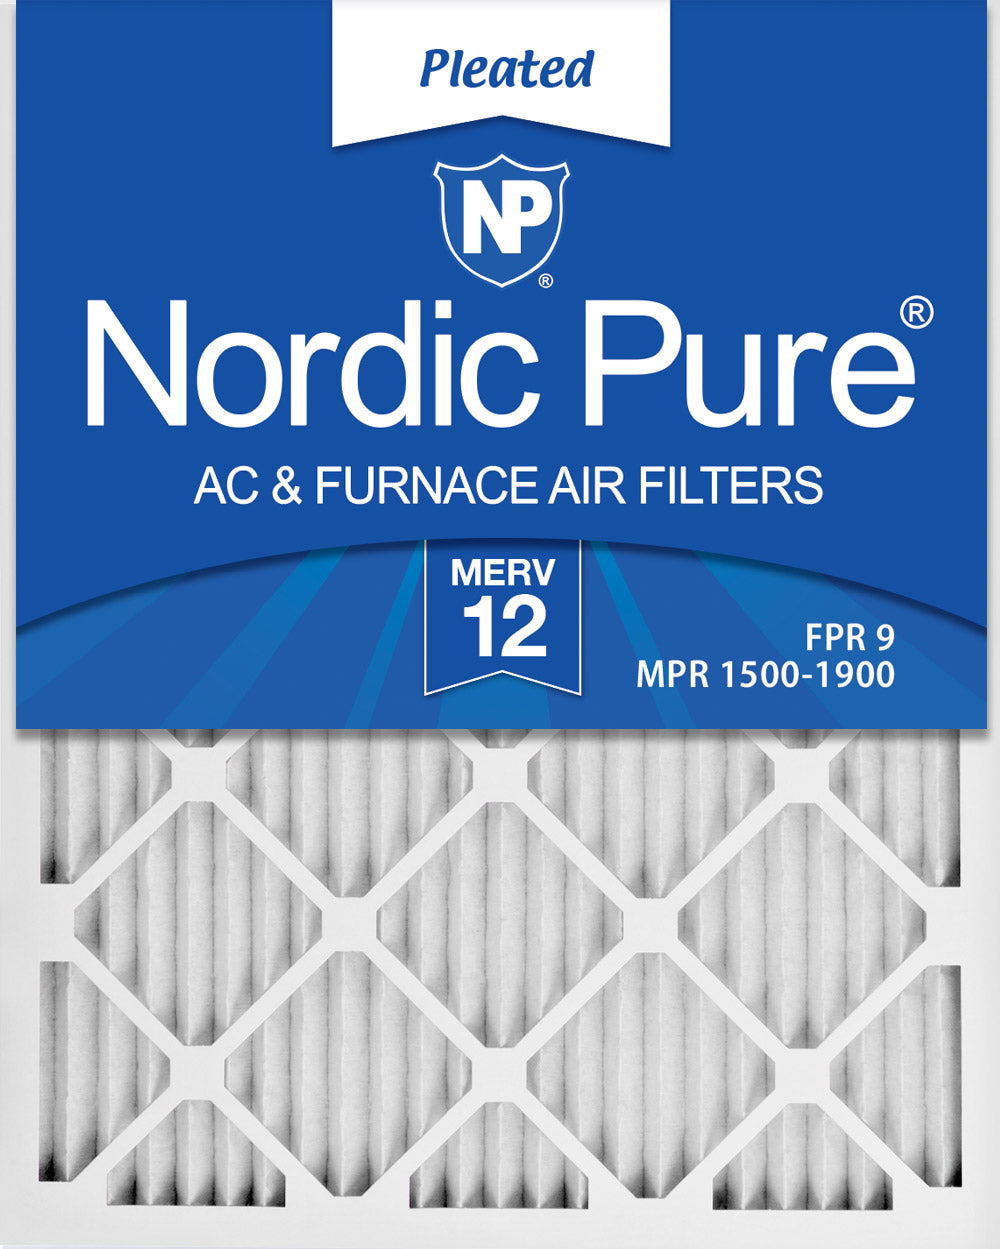 14x30x1 Pleated MERV 12 Air Filters 6 Pack